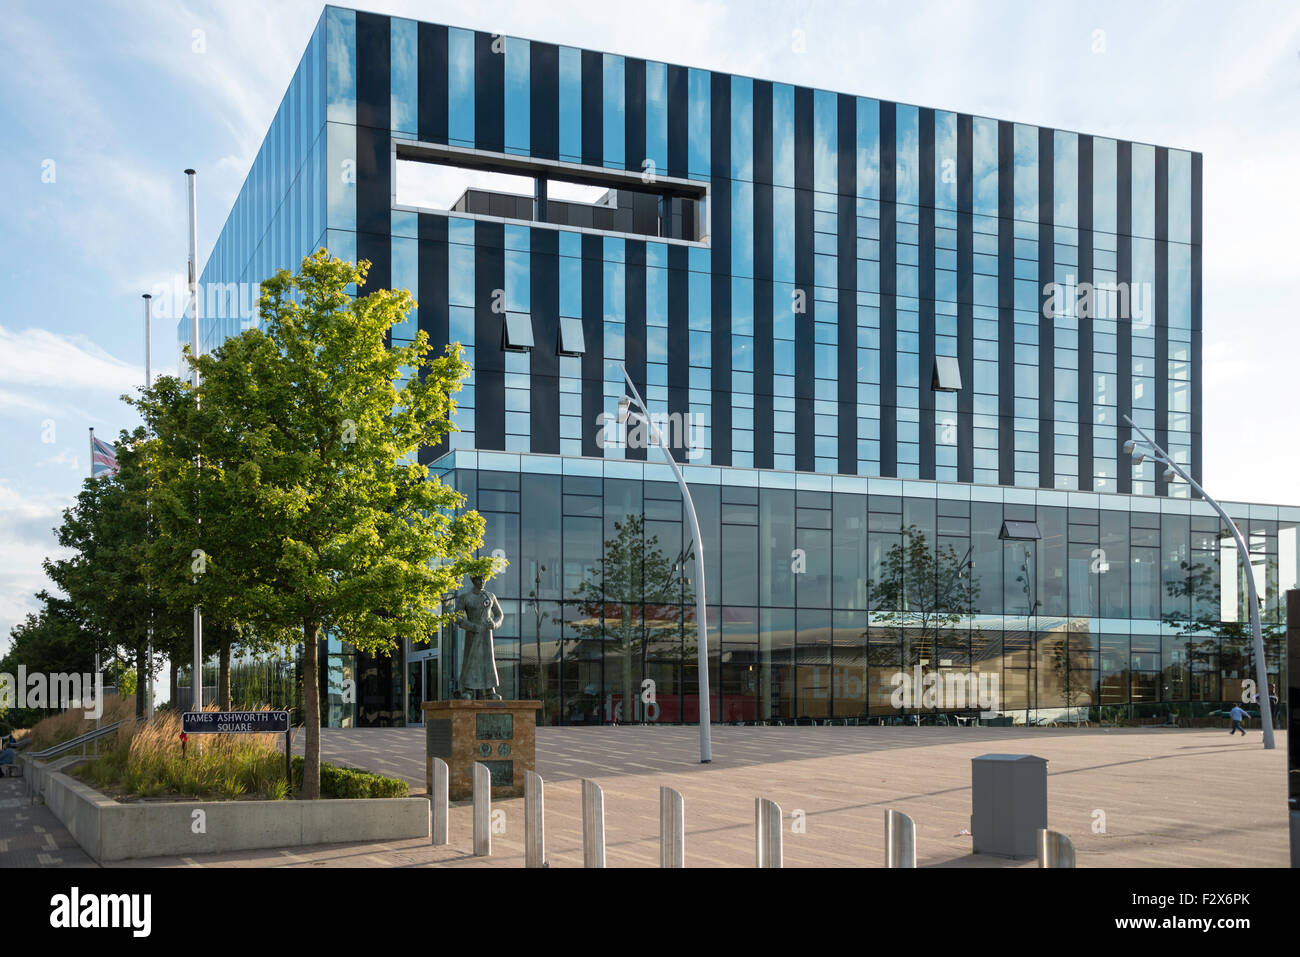 The Core at Corby Cube, George Street, Corby, Northamptonshire, England, United Kingdom - Stock Image